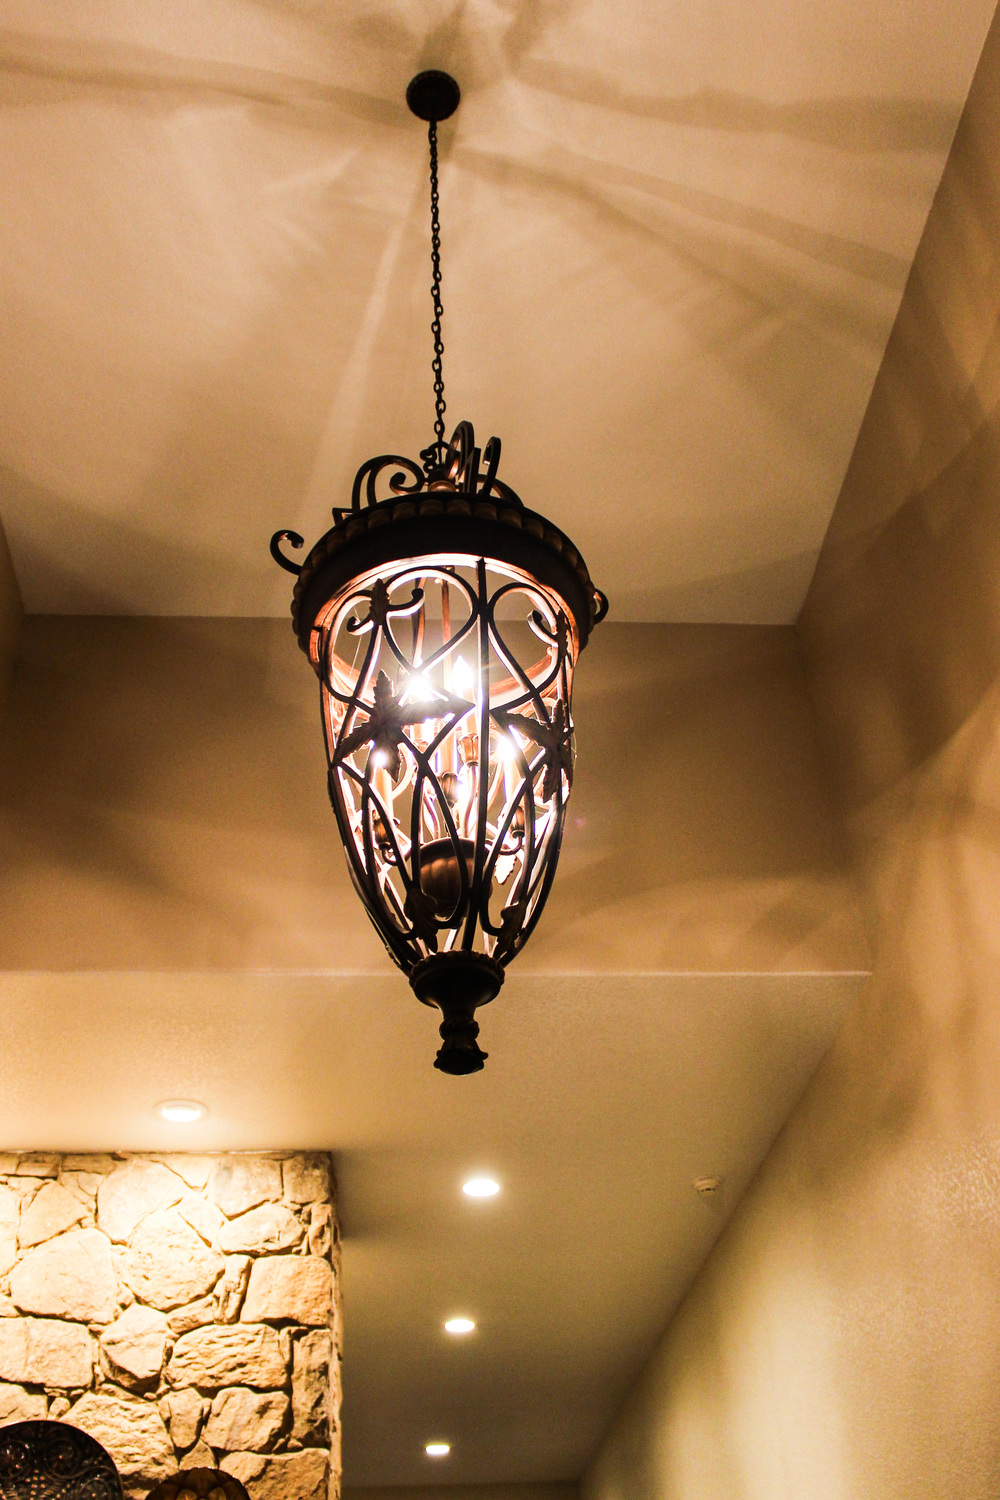 High End Lighting & Blackstone Electric Co.Past Projects